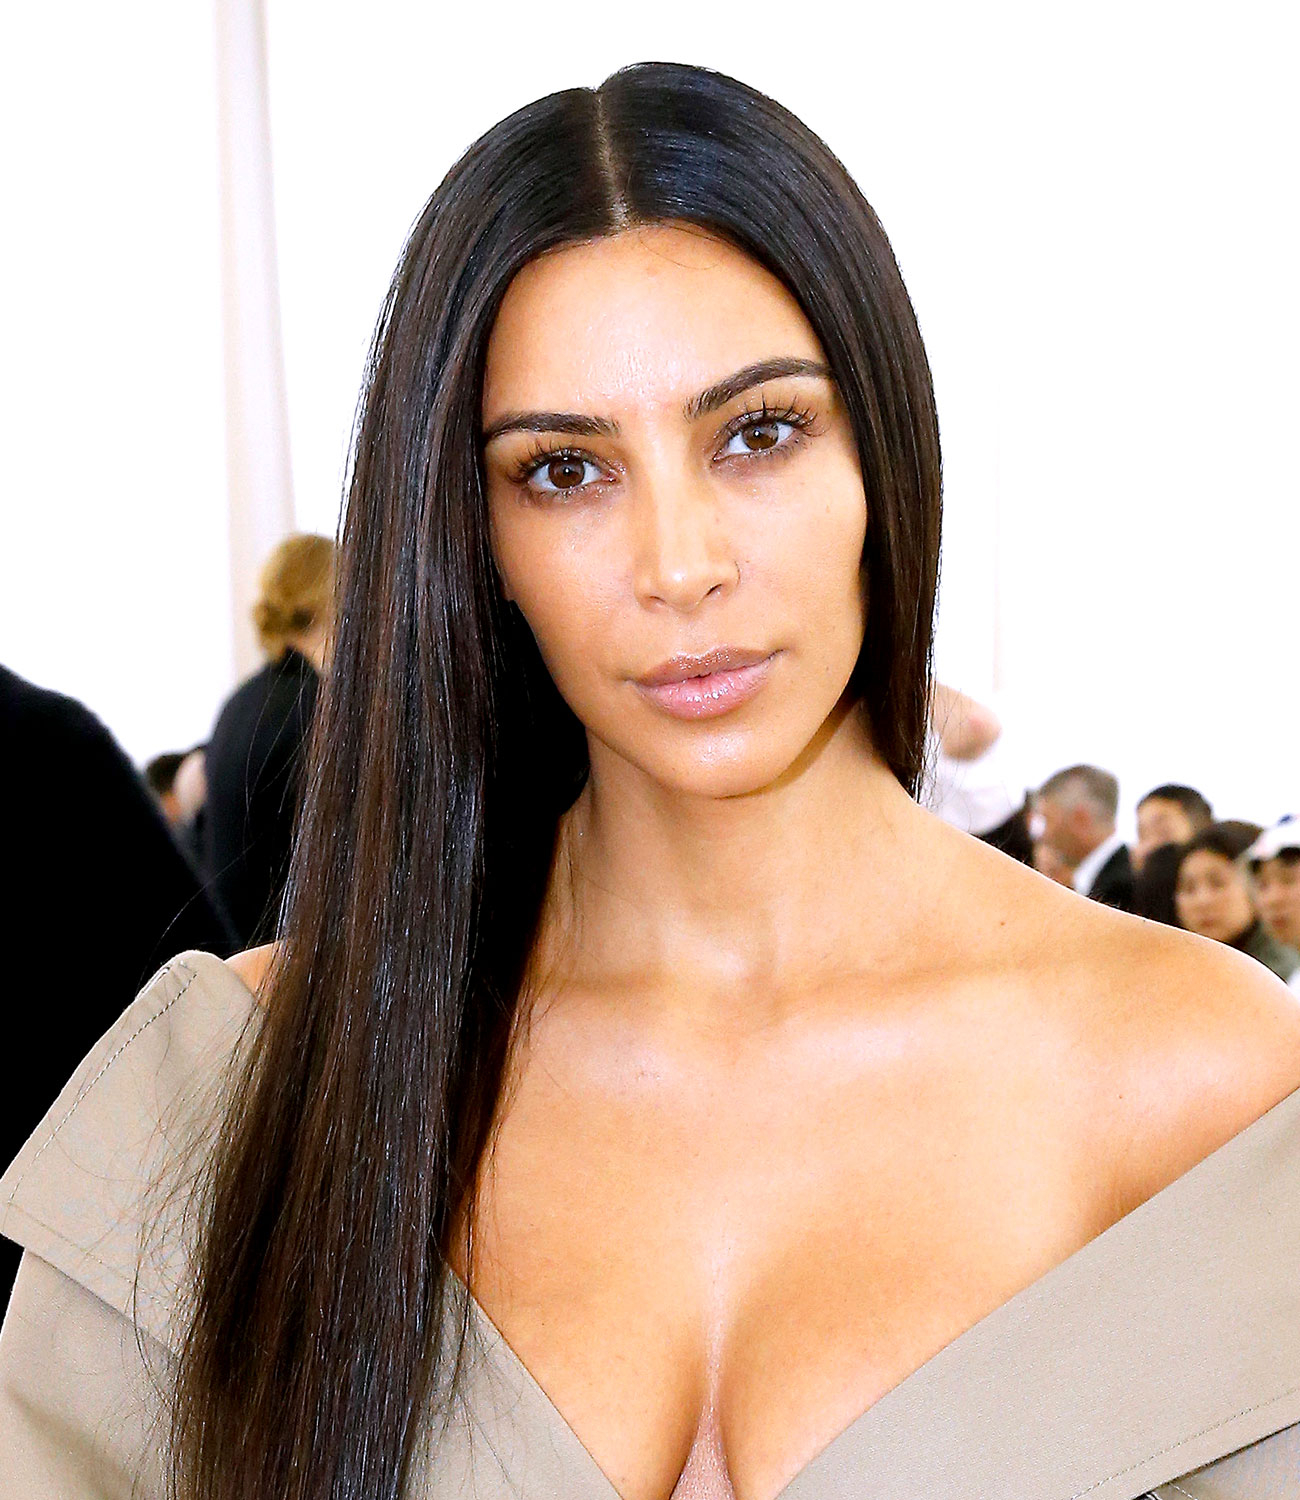 Kim Kardashian: How She\u0027s Evolved Through the Years